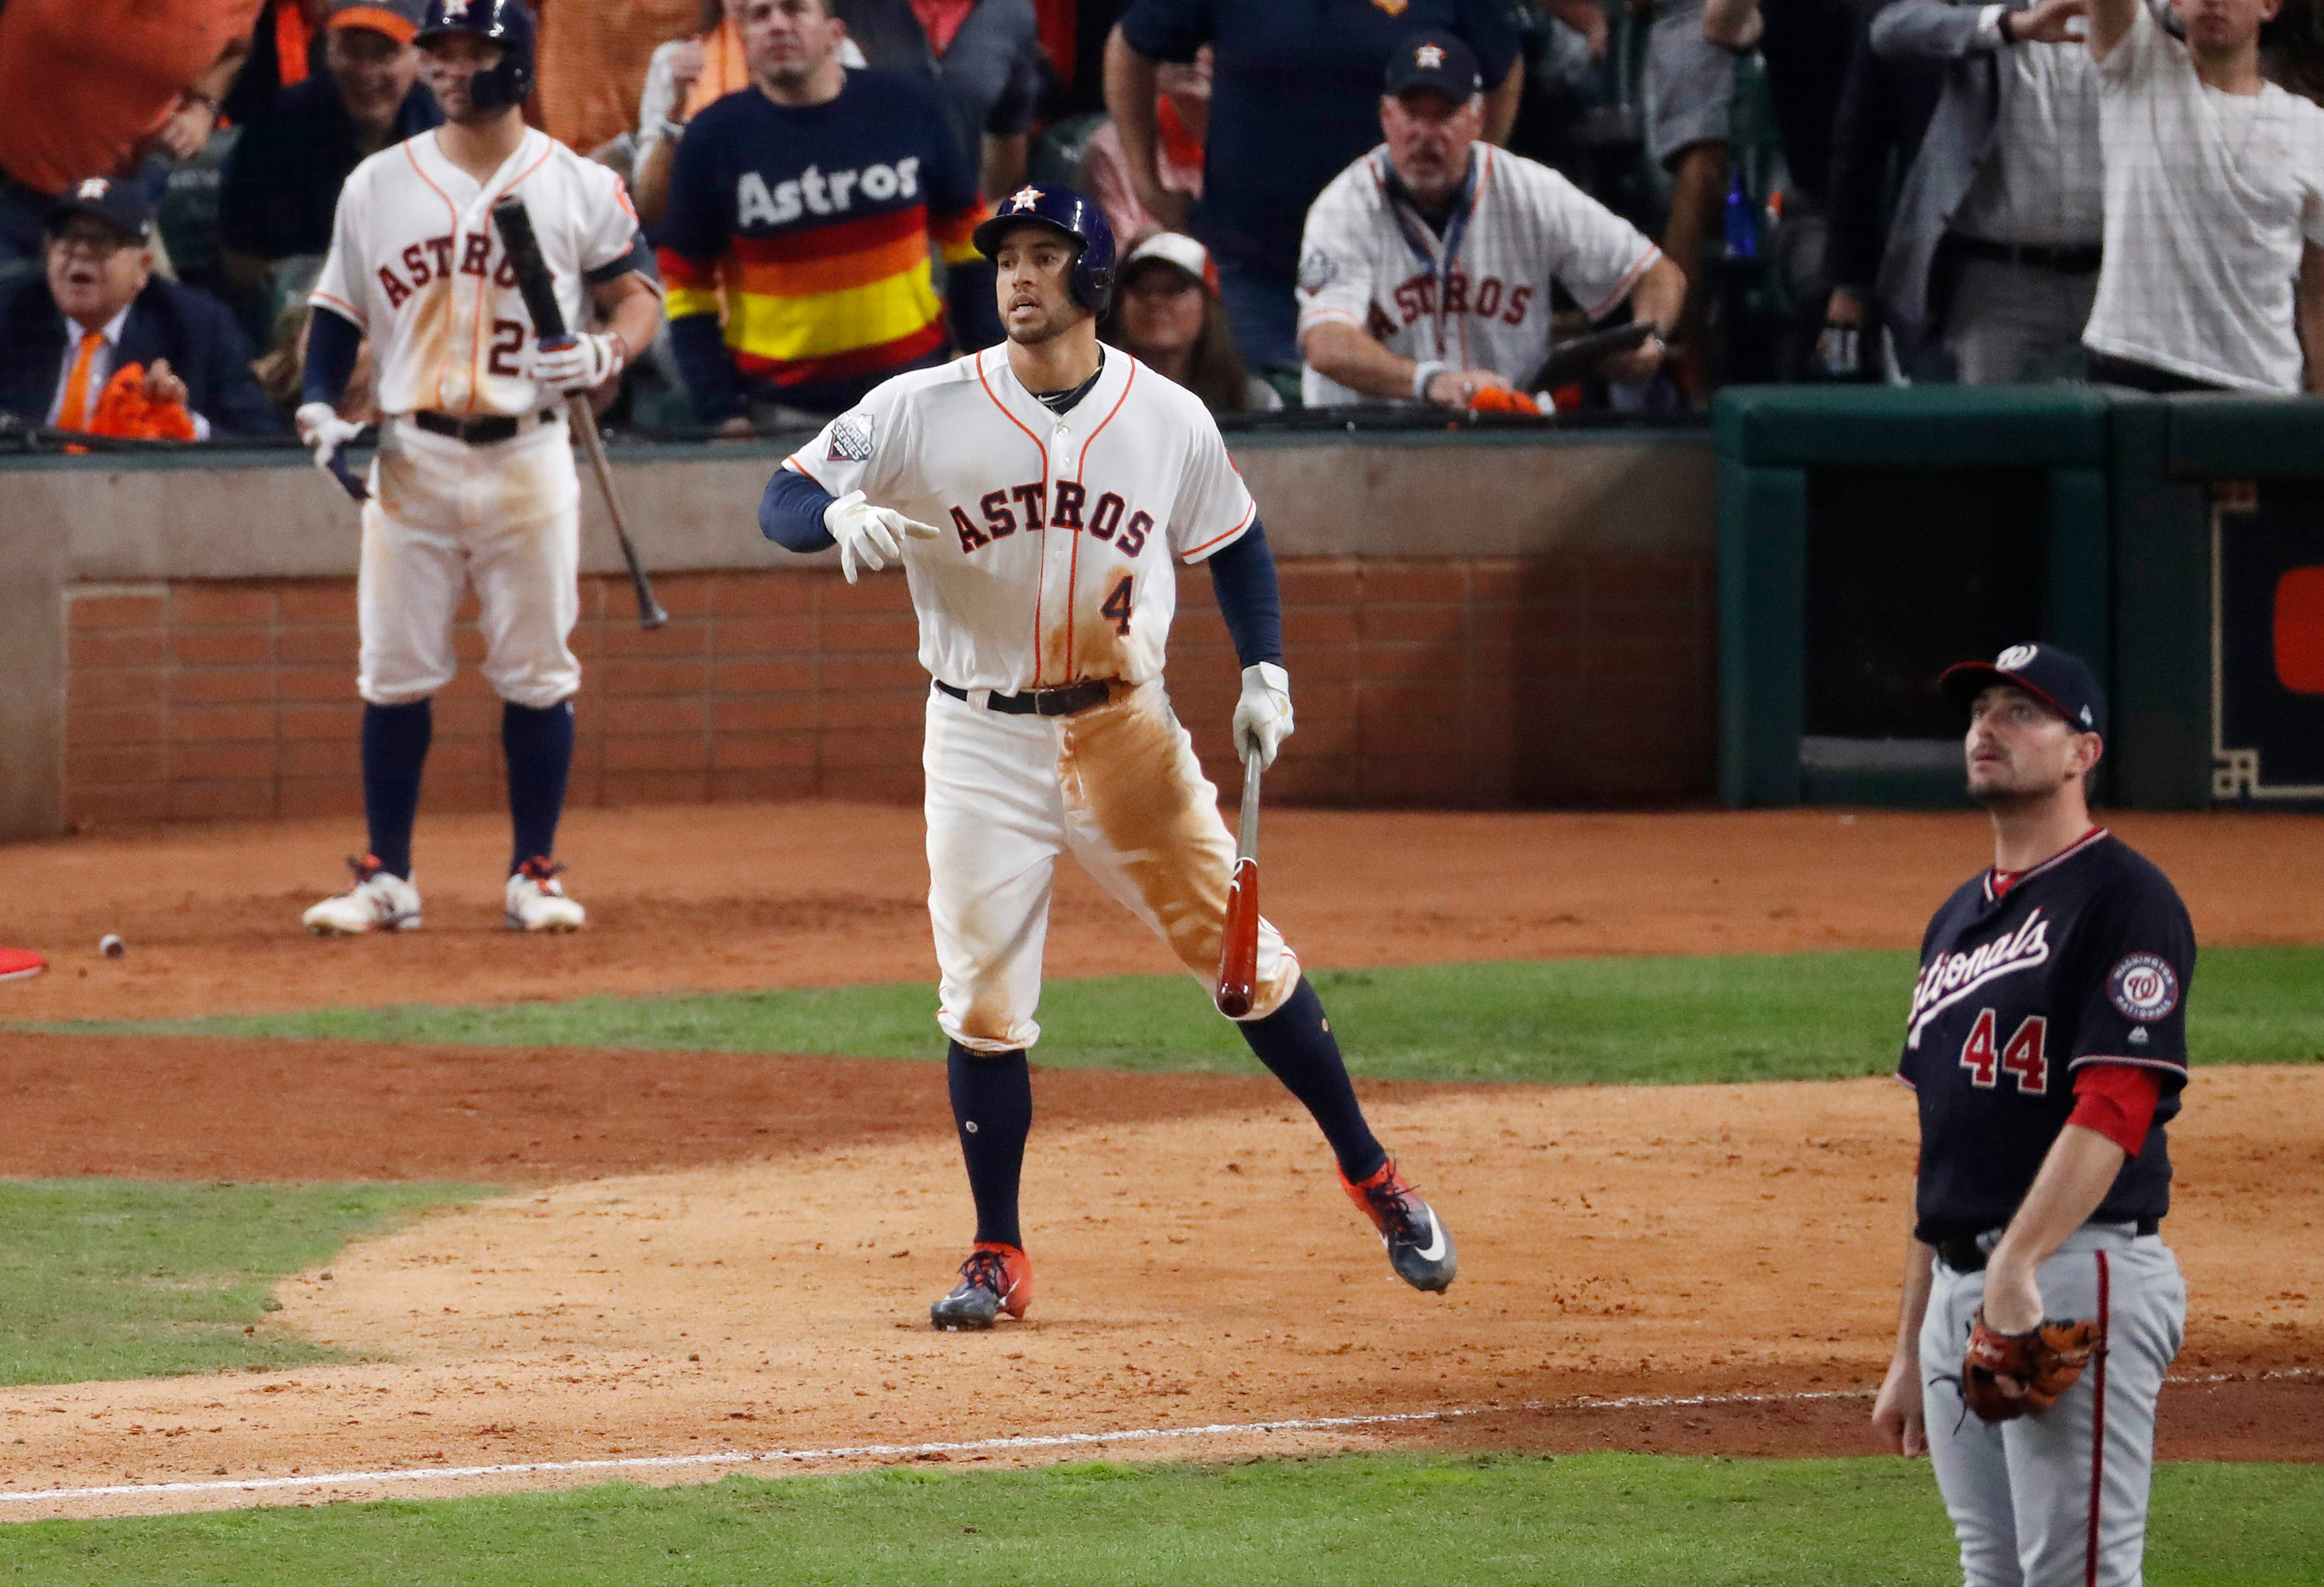 Astros manager A.J. Hinch says George Springers baserunning flap wasnt an egregious pimp job